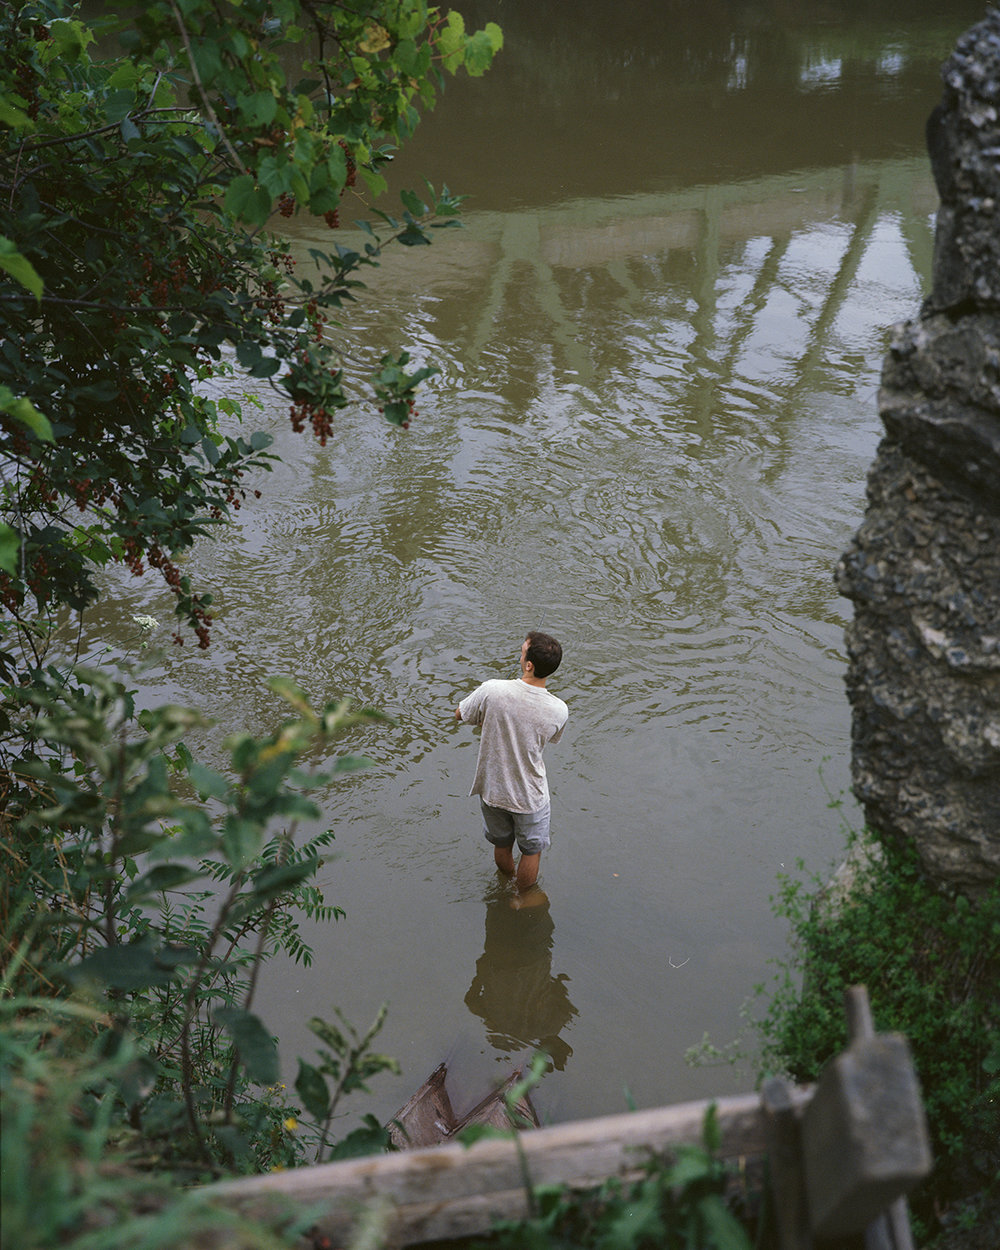 Nip_Fishing_2 001